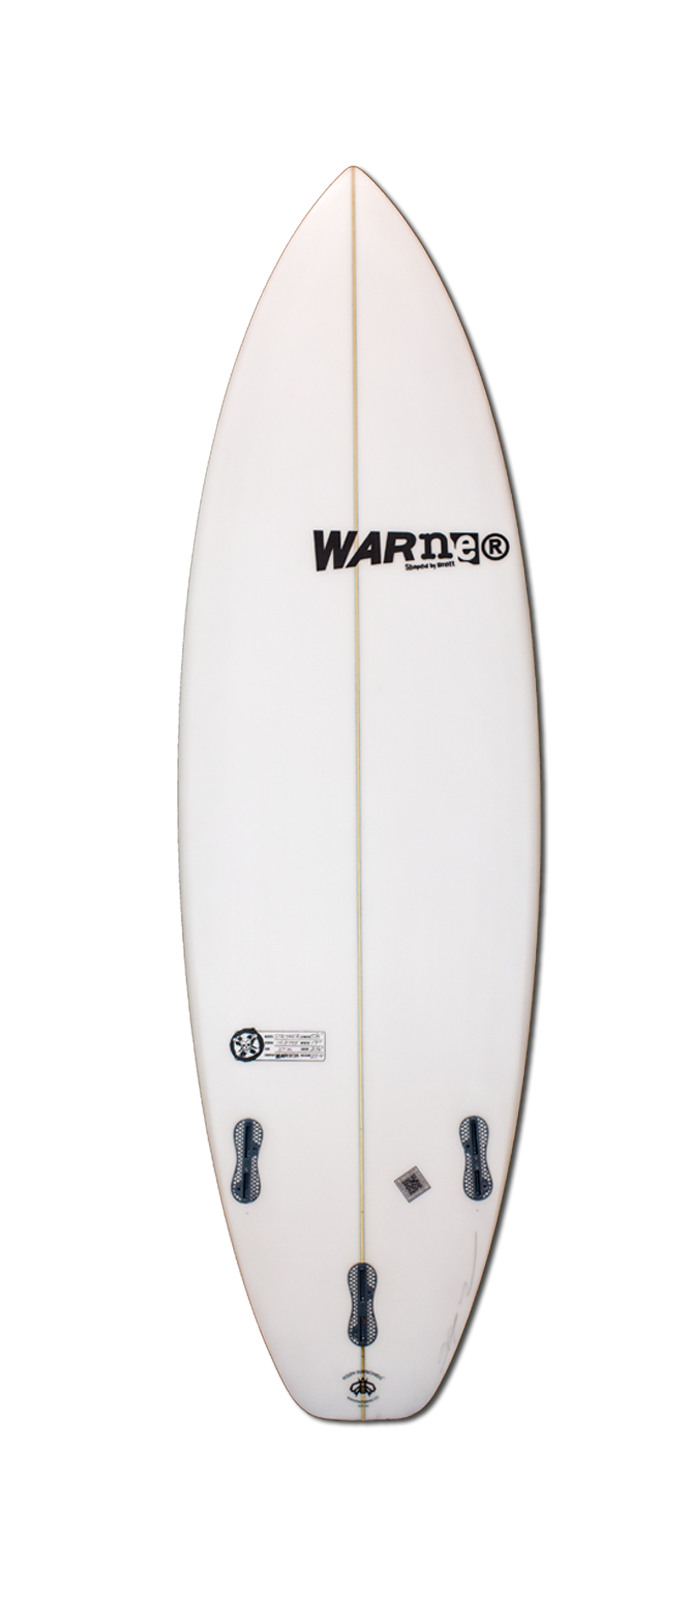 STRYKER surfboard model bottom